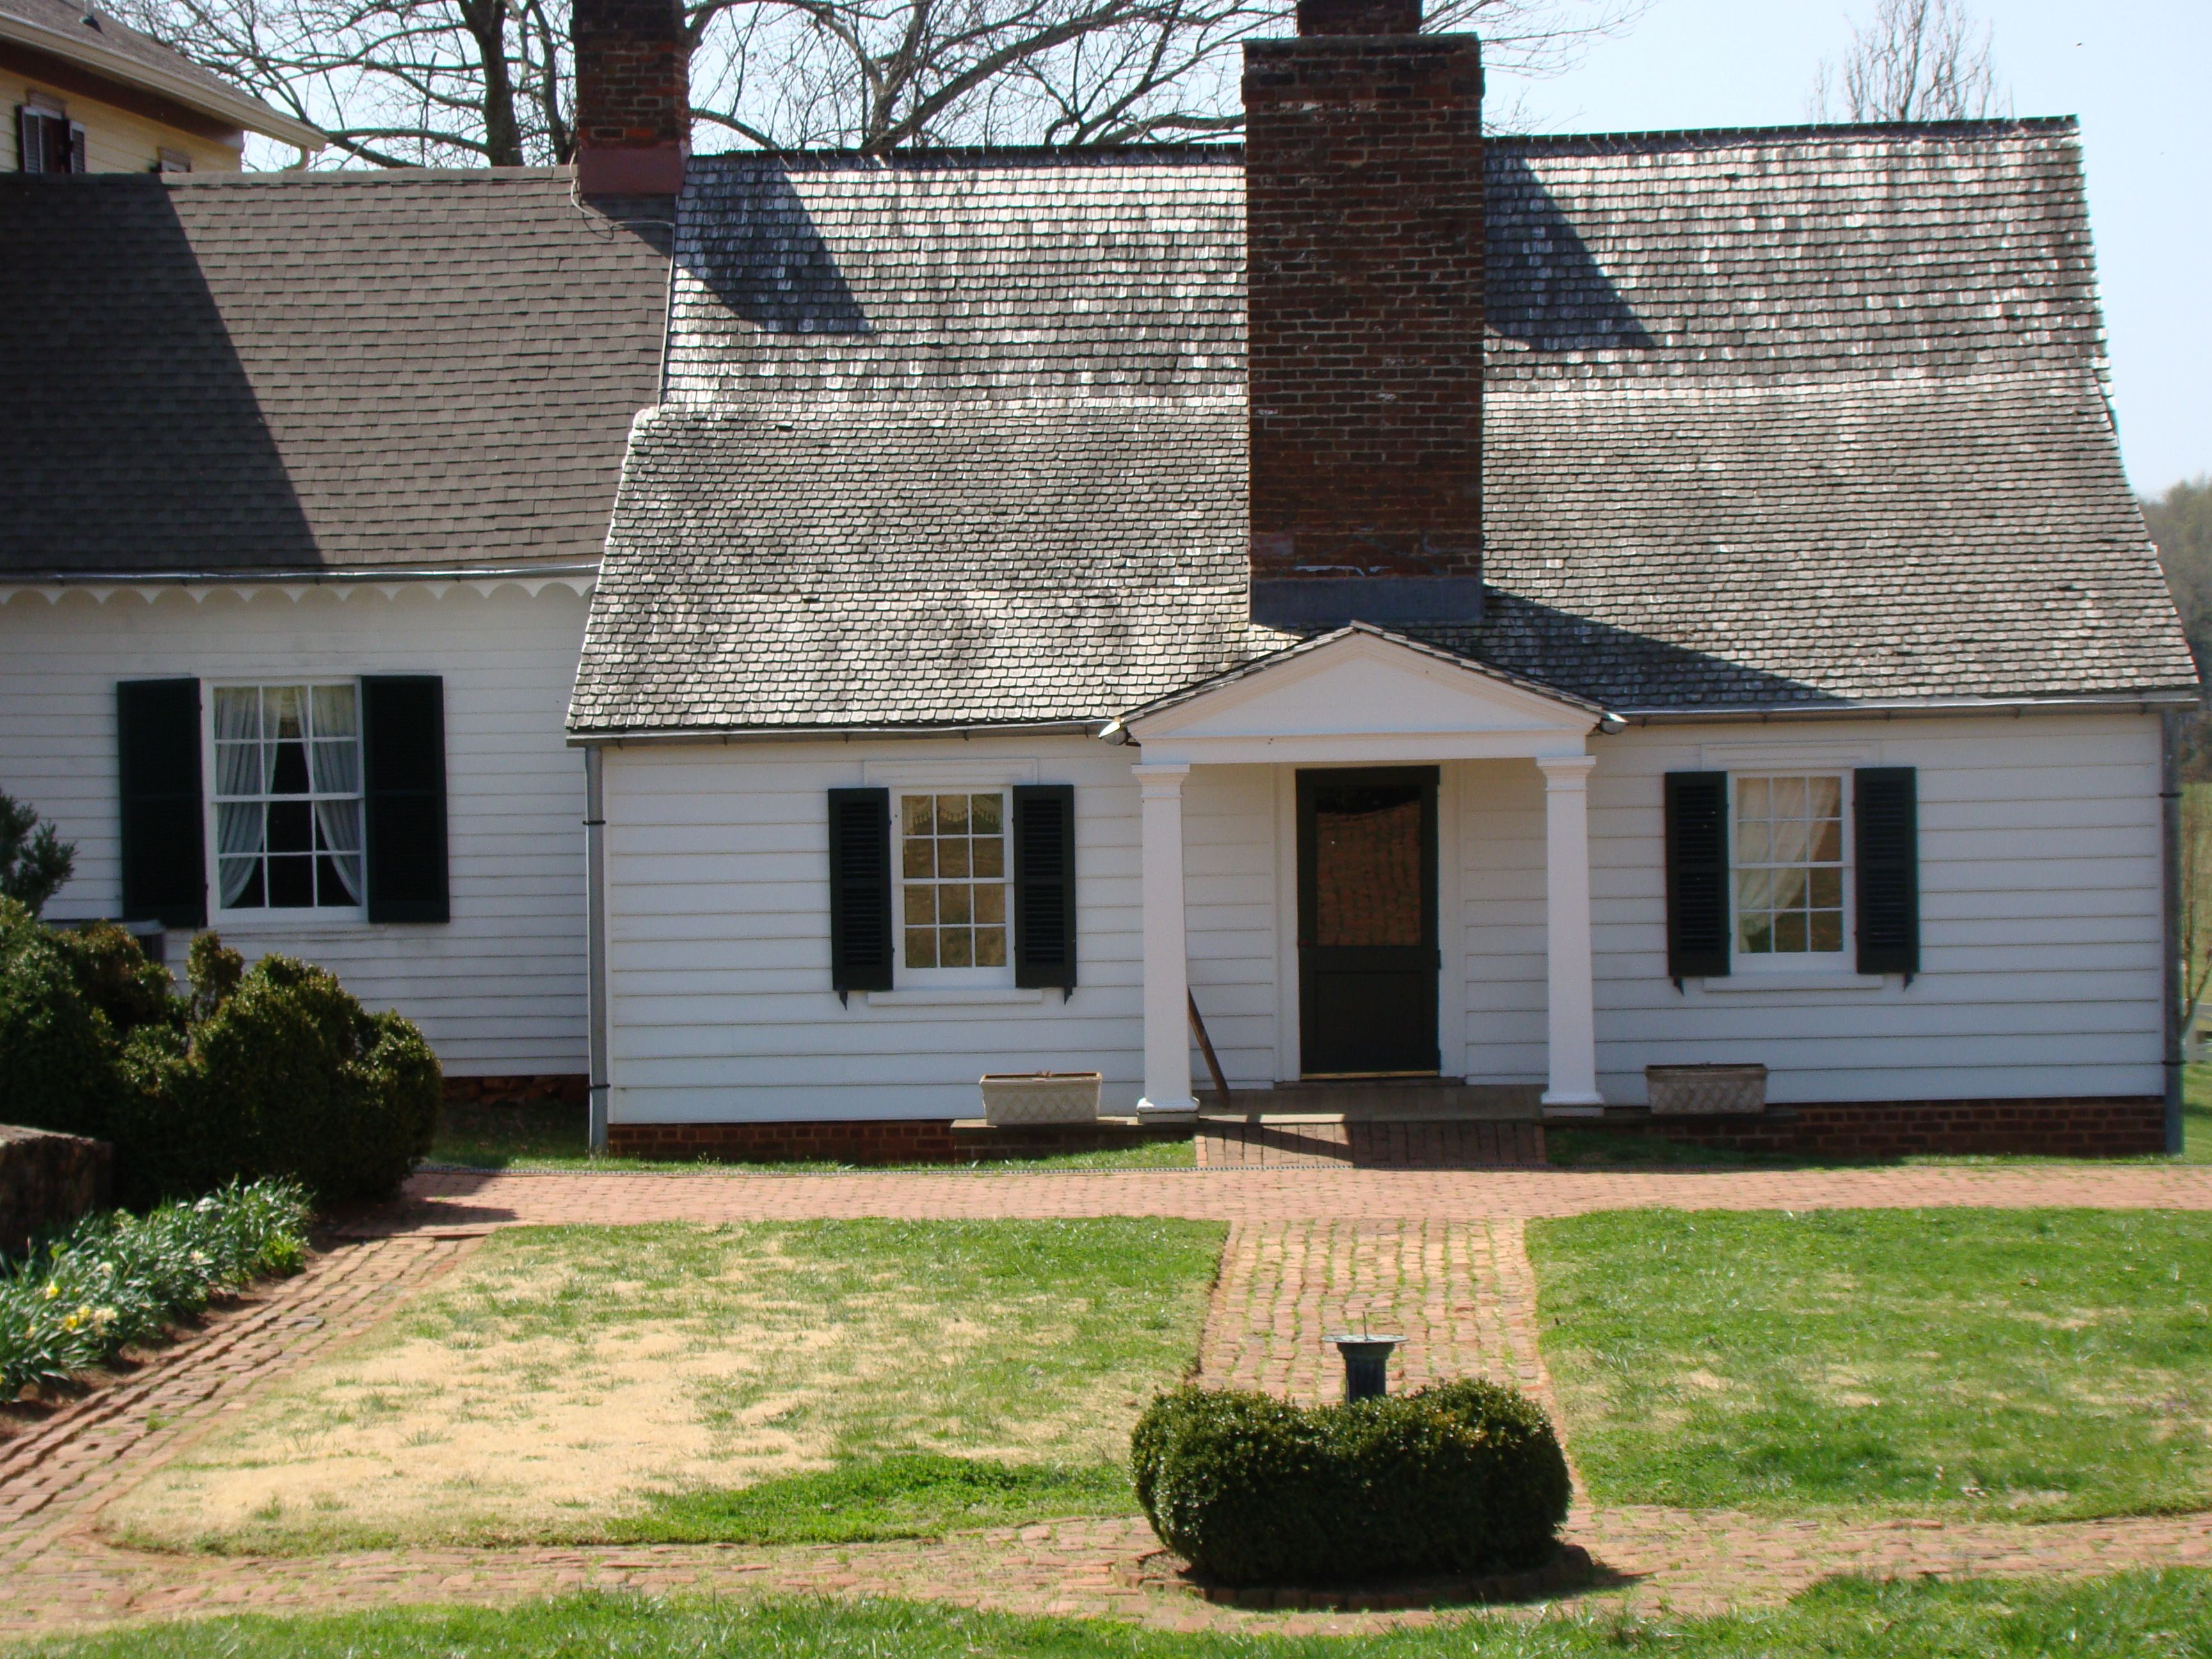 Ashlawn Highland Home Of James Monroe 5th President Of The Us Located In Charlottesville Va Just 3 Miles From Montice Highland Homes Monticello Home Library